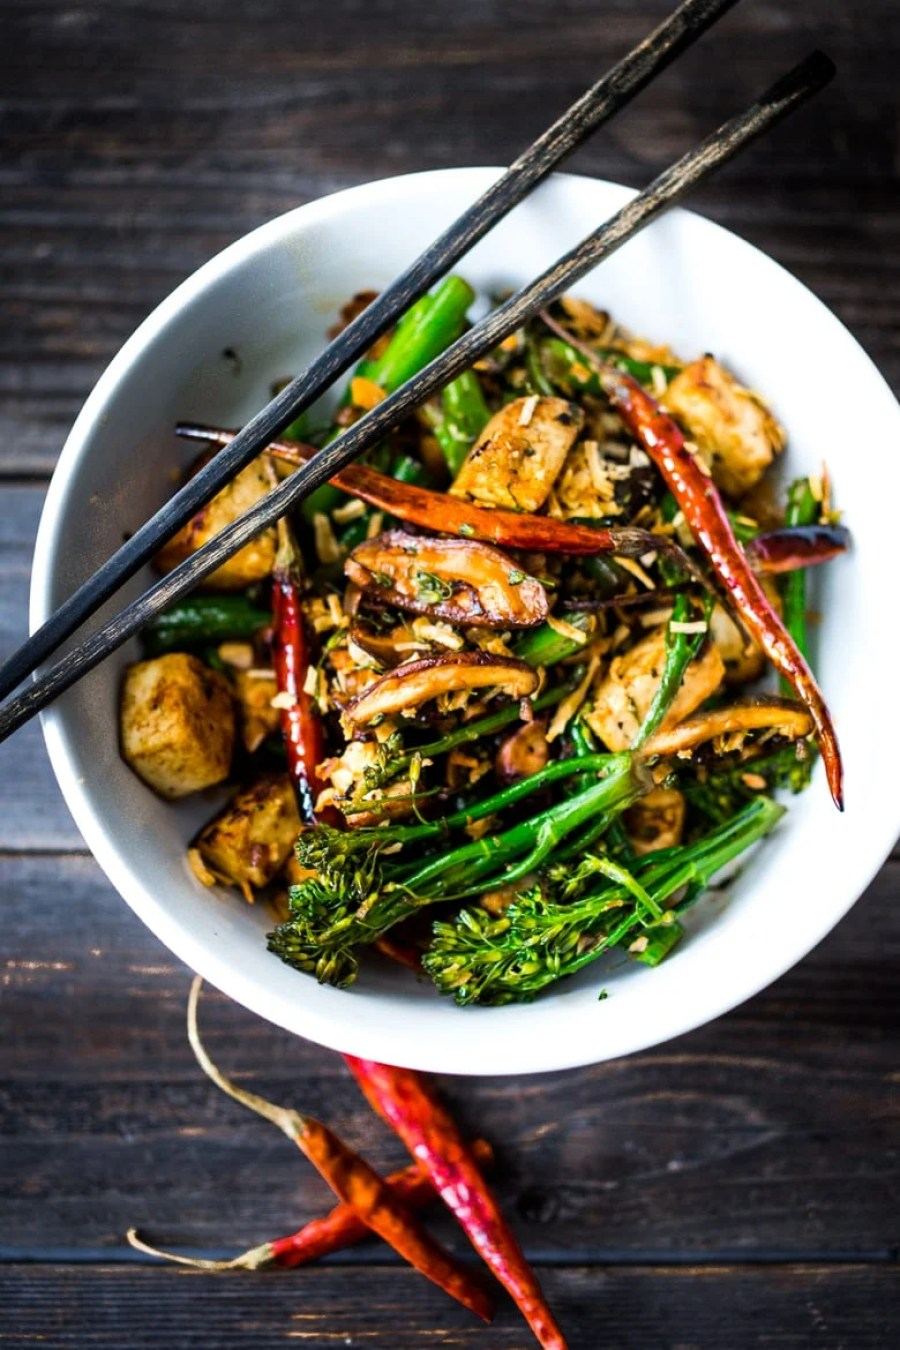 EAT CLEAN with these 20 simple Plant-Based Meals!!!   Broccolini Mushroom Stir- Fry with tofu ( or chicken)- a simple fast delicious and healthy dinner! Vegan and GF!   www.feastingathome.com